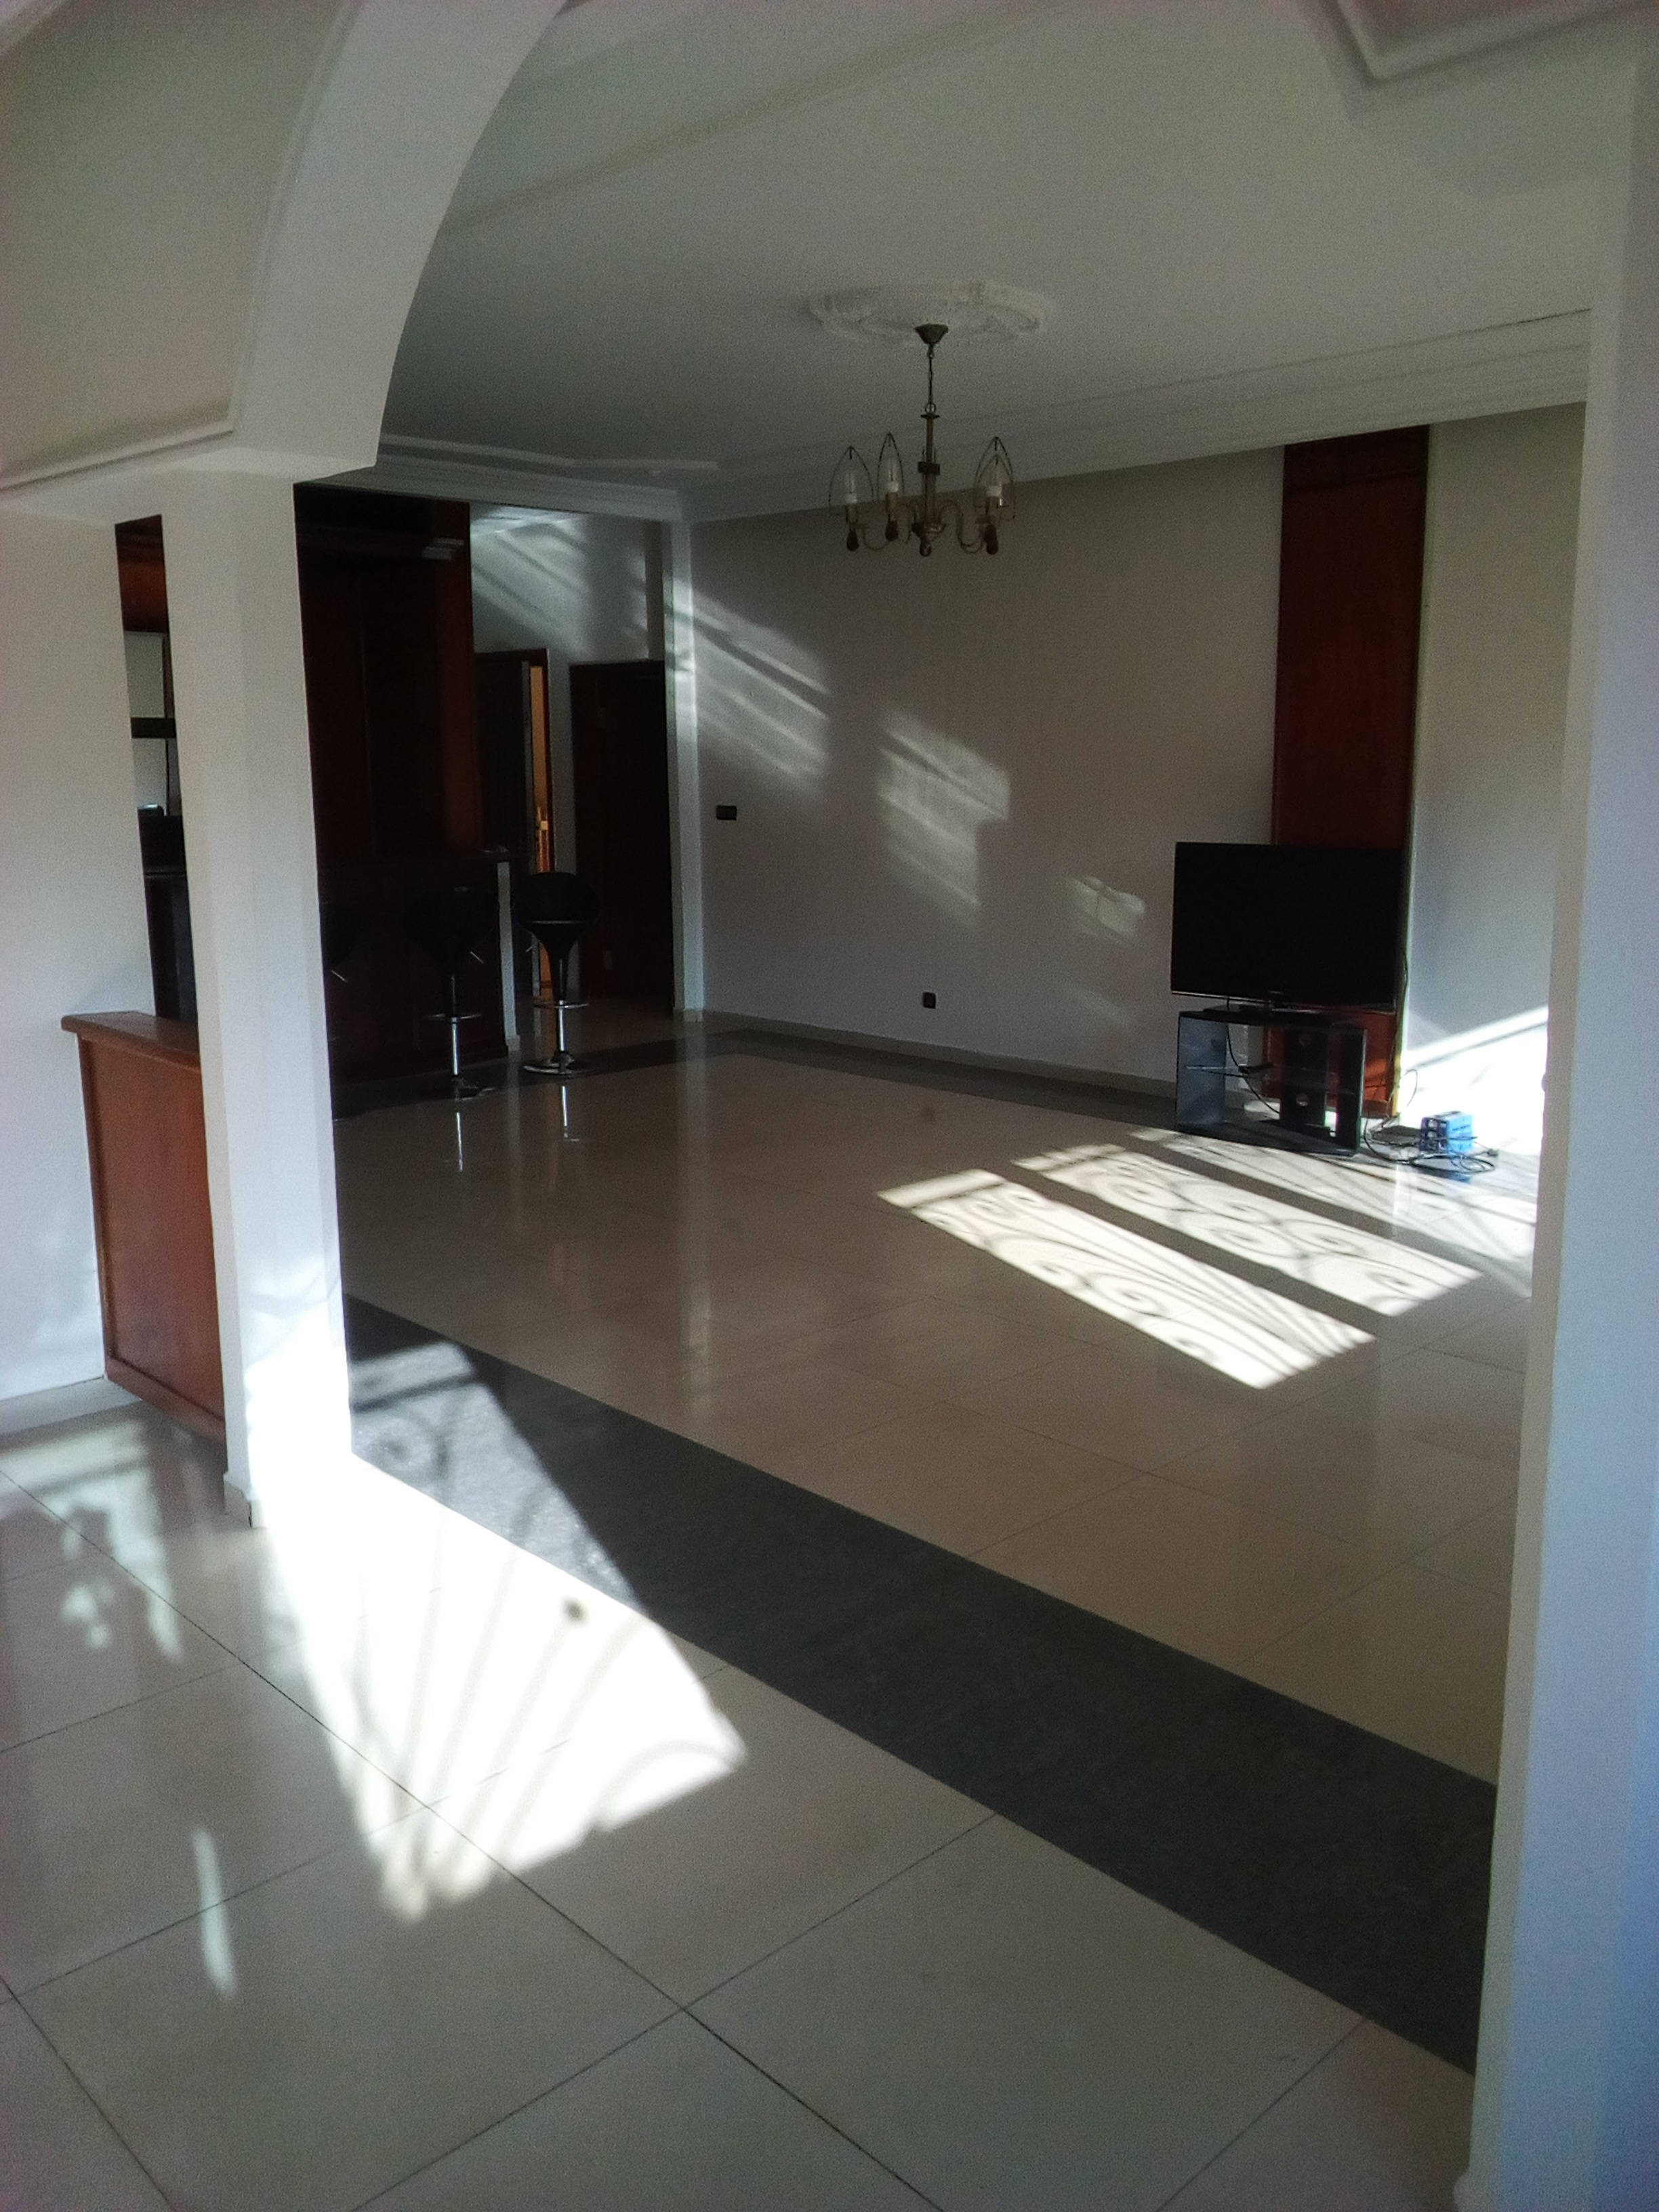 Apartment to rent - Yaoundé, Bastos, pas loin de residence du nigeria - 1 living room(s), 3 bedroom(s), 4 bathroom(s) - 1 300 000 FCFA / month